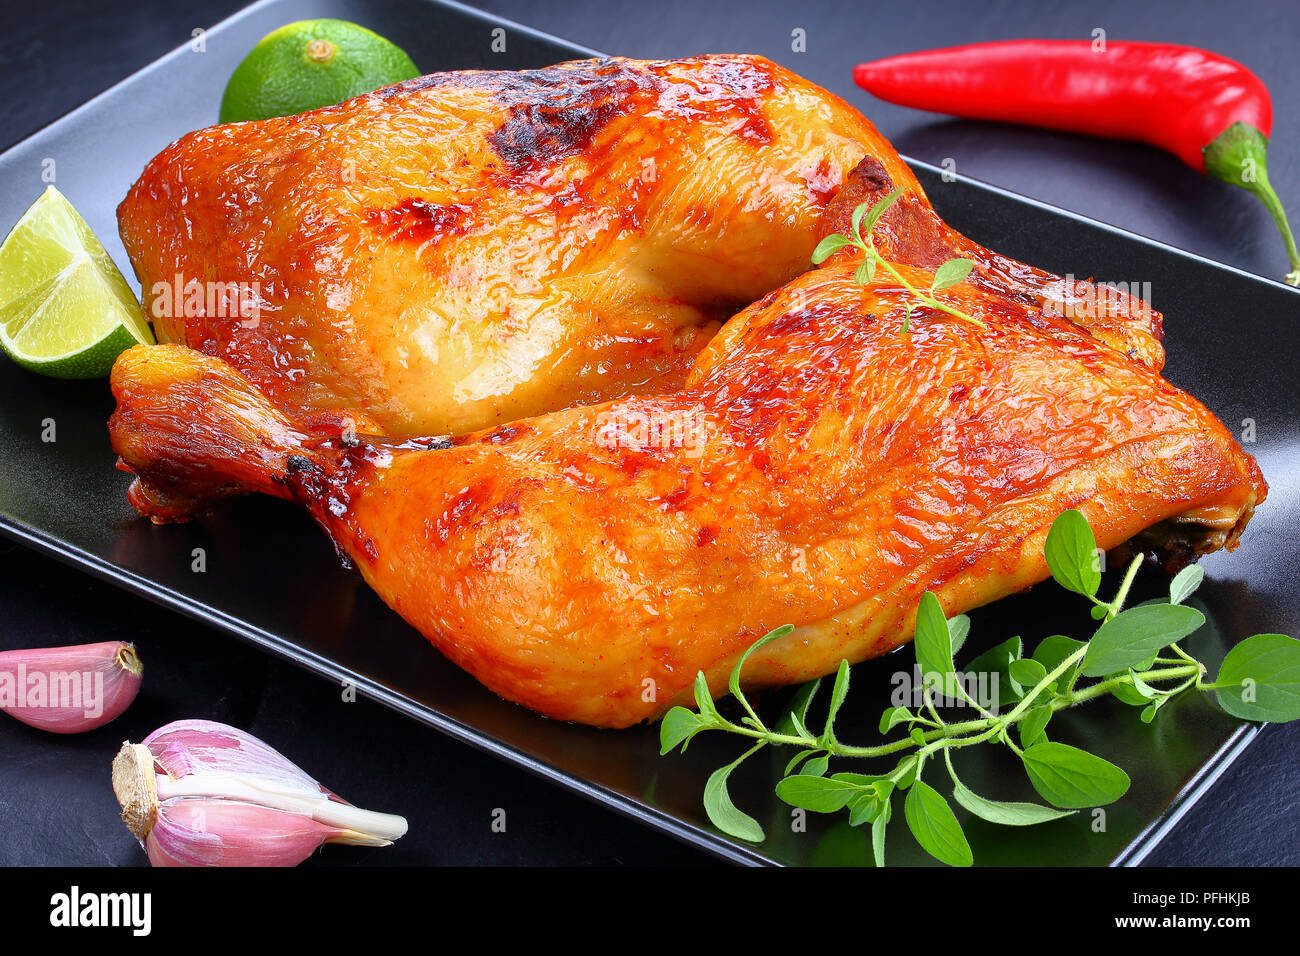 delicious roasted chicken legs with crispy golden brown skin with lemon slices and fresh green thyme leaves on black plate on slate tray, view from ab - Stock Image